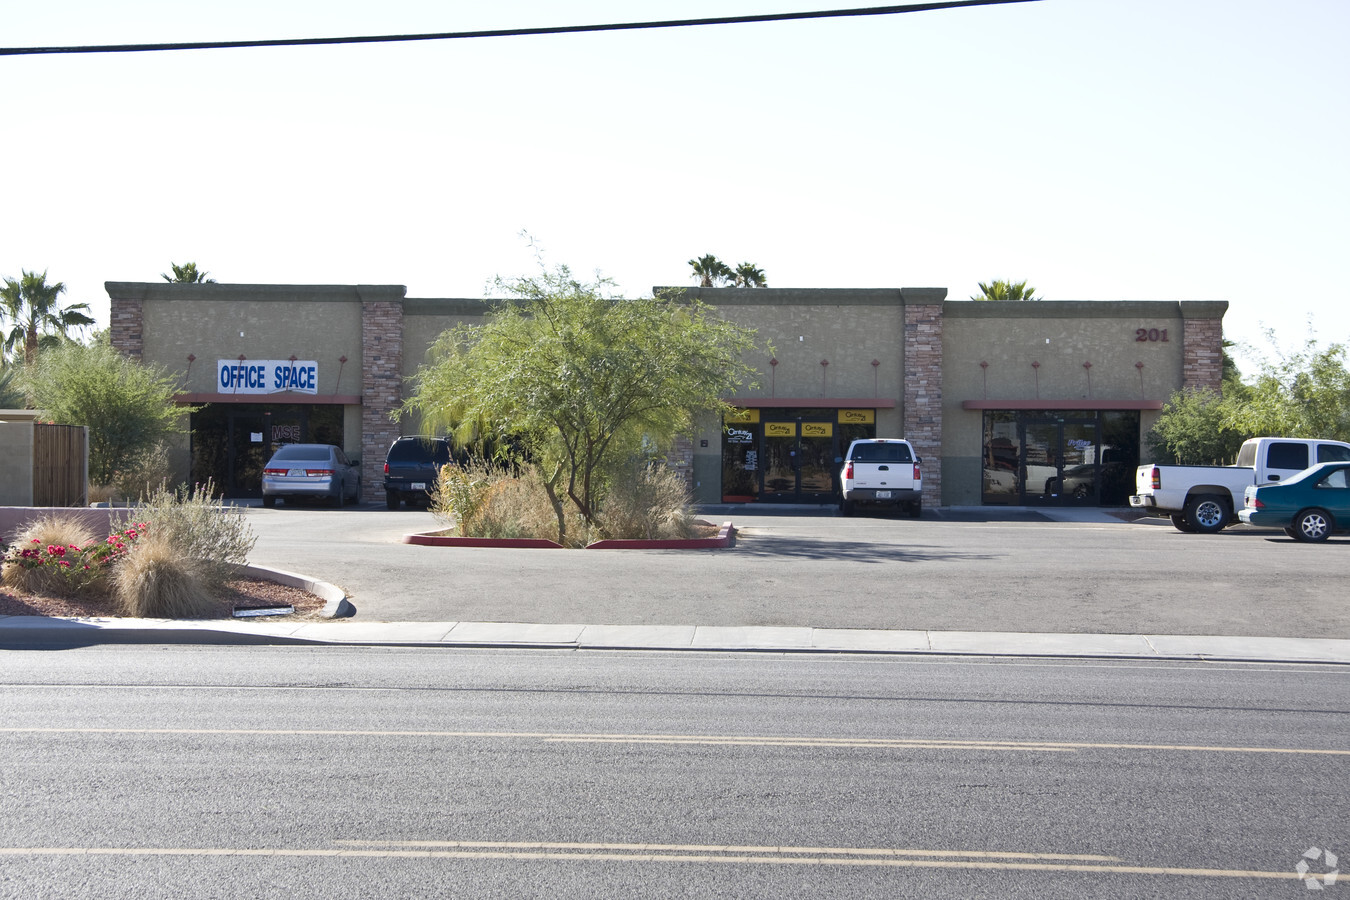 201 E Cottonwood Ln, Casa Grande AZ 85122 Office Building